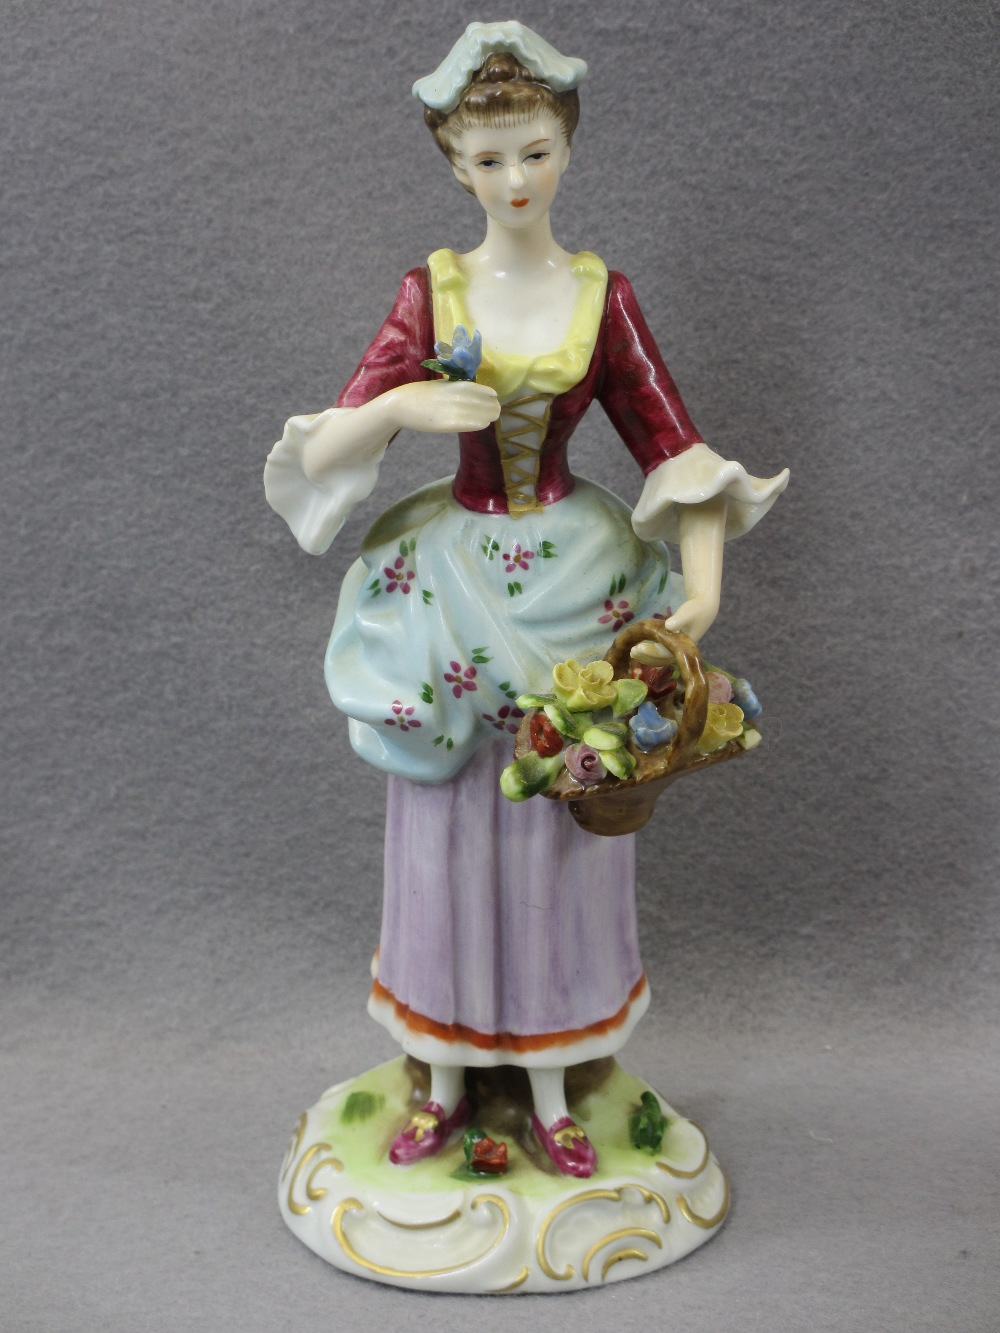 PORCELAIN & COMPOSITION CABINET FIGURINES, A COLLECTION including a Sitzendorf group of young man - Image 3 of 7